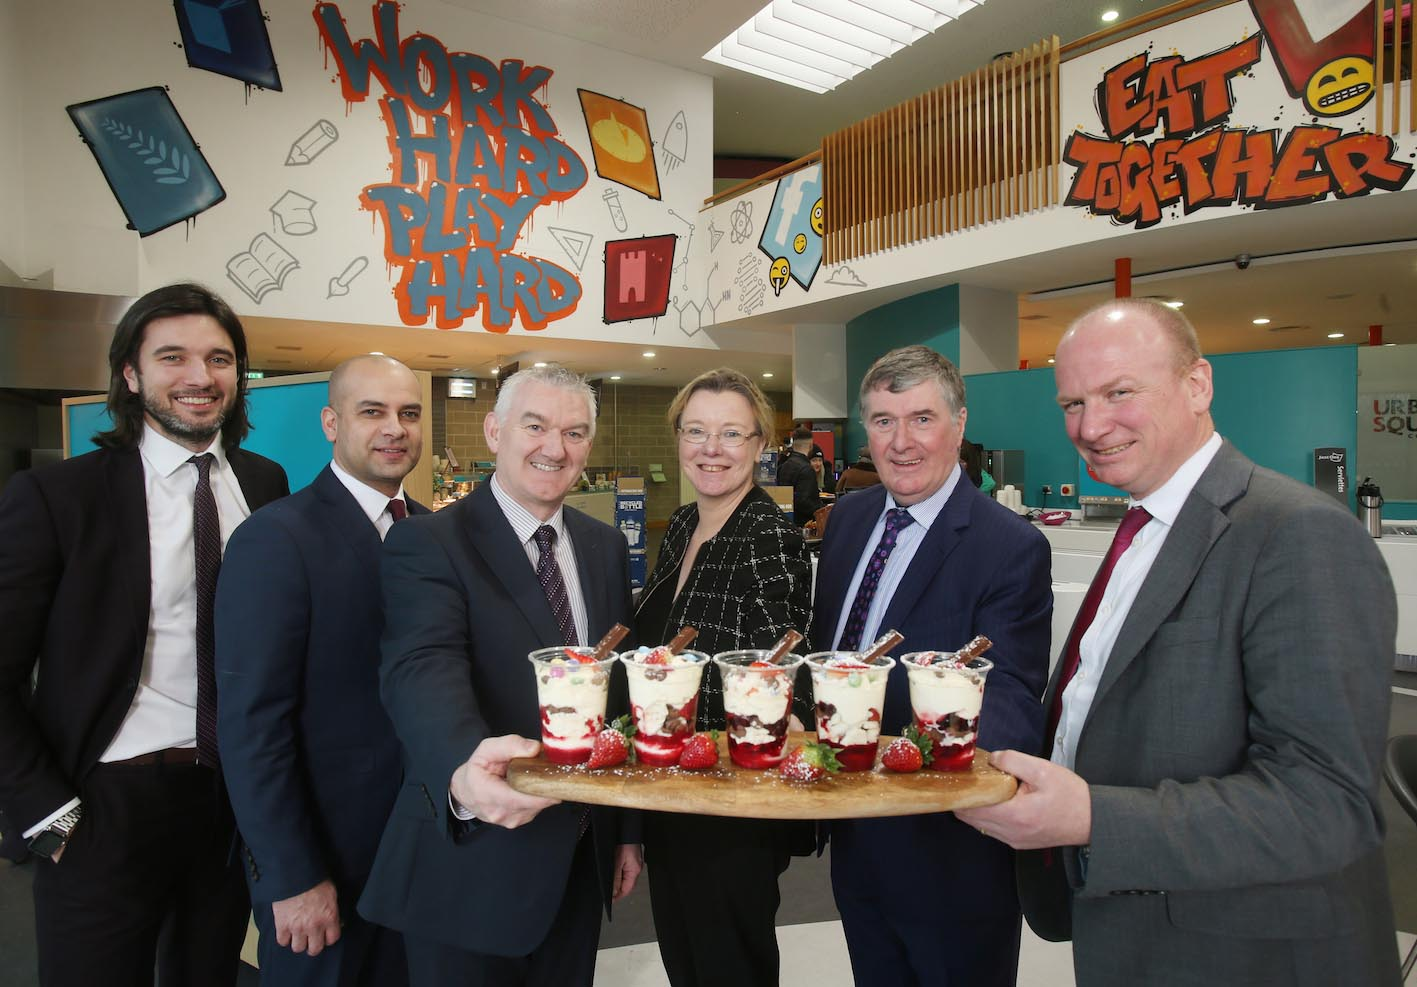 Mount Charles wins major education contract at Maynooth University